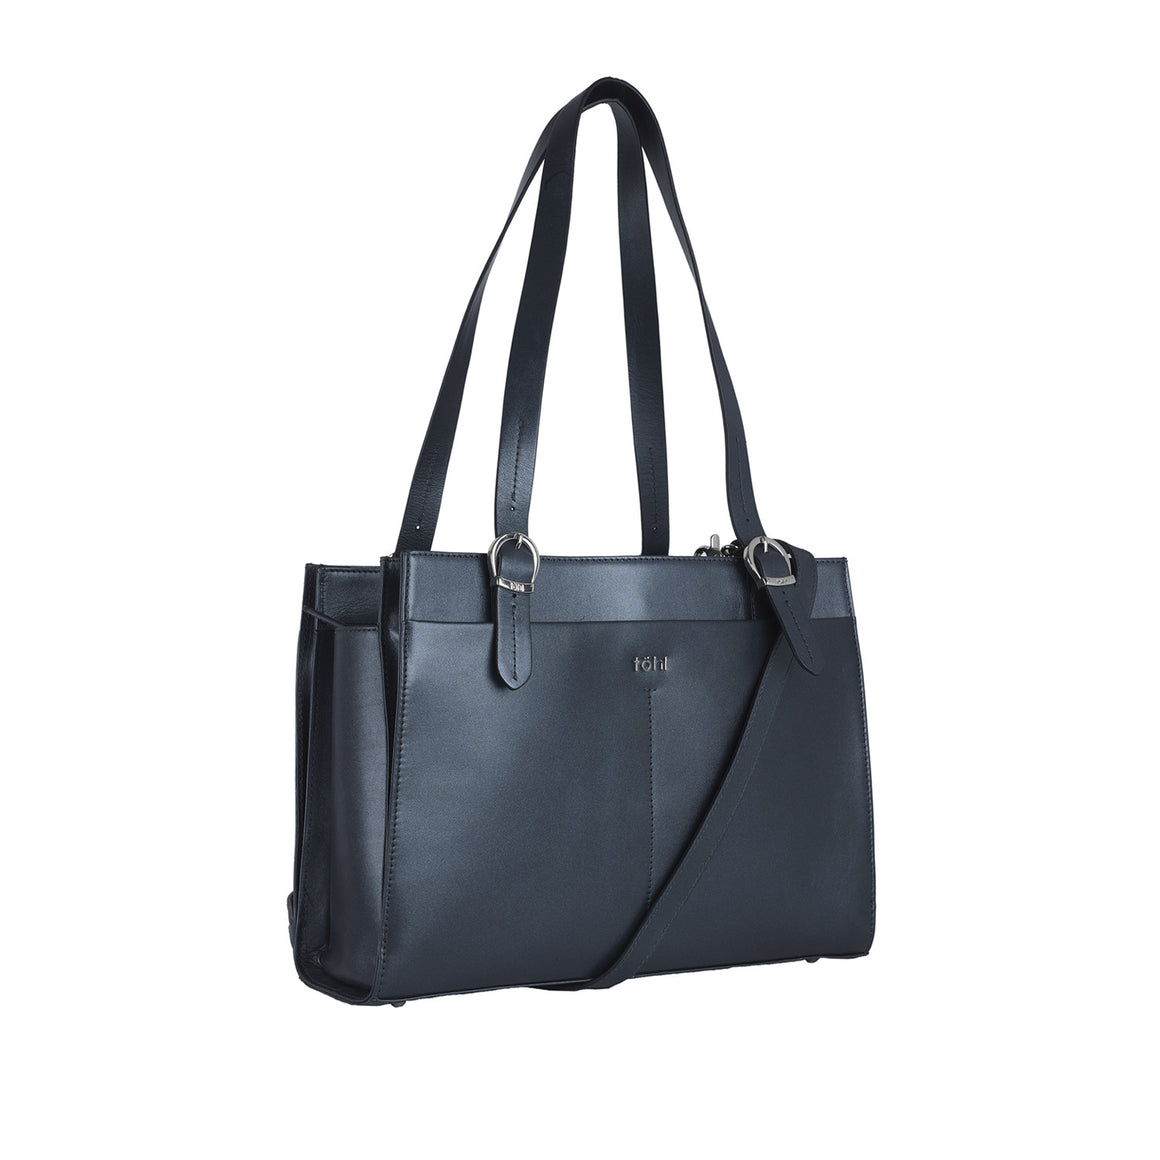 SB 0018 - TOHL TRINITY WOMEN'S DAY BAG - METALLIC CARBON